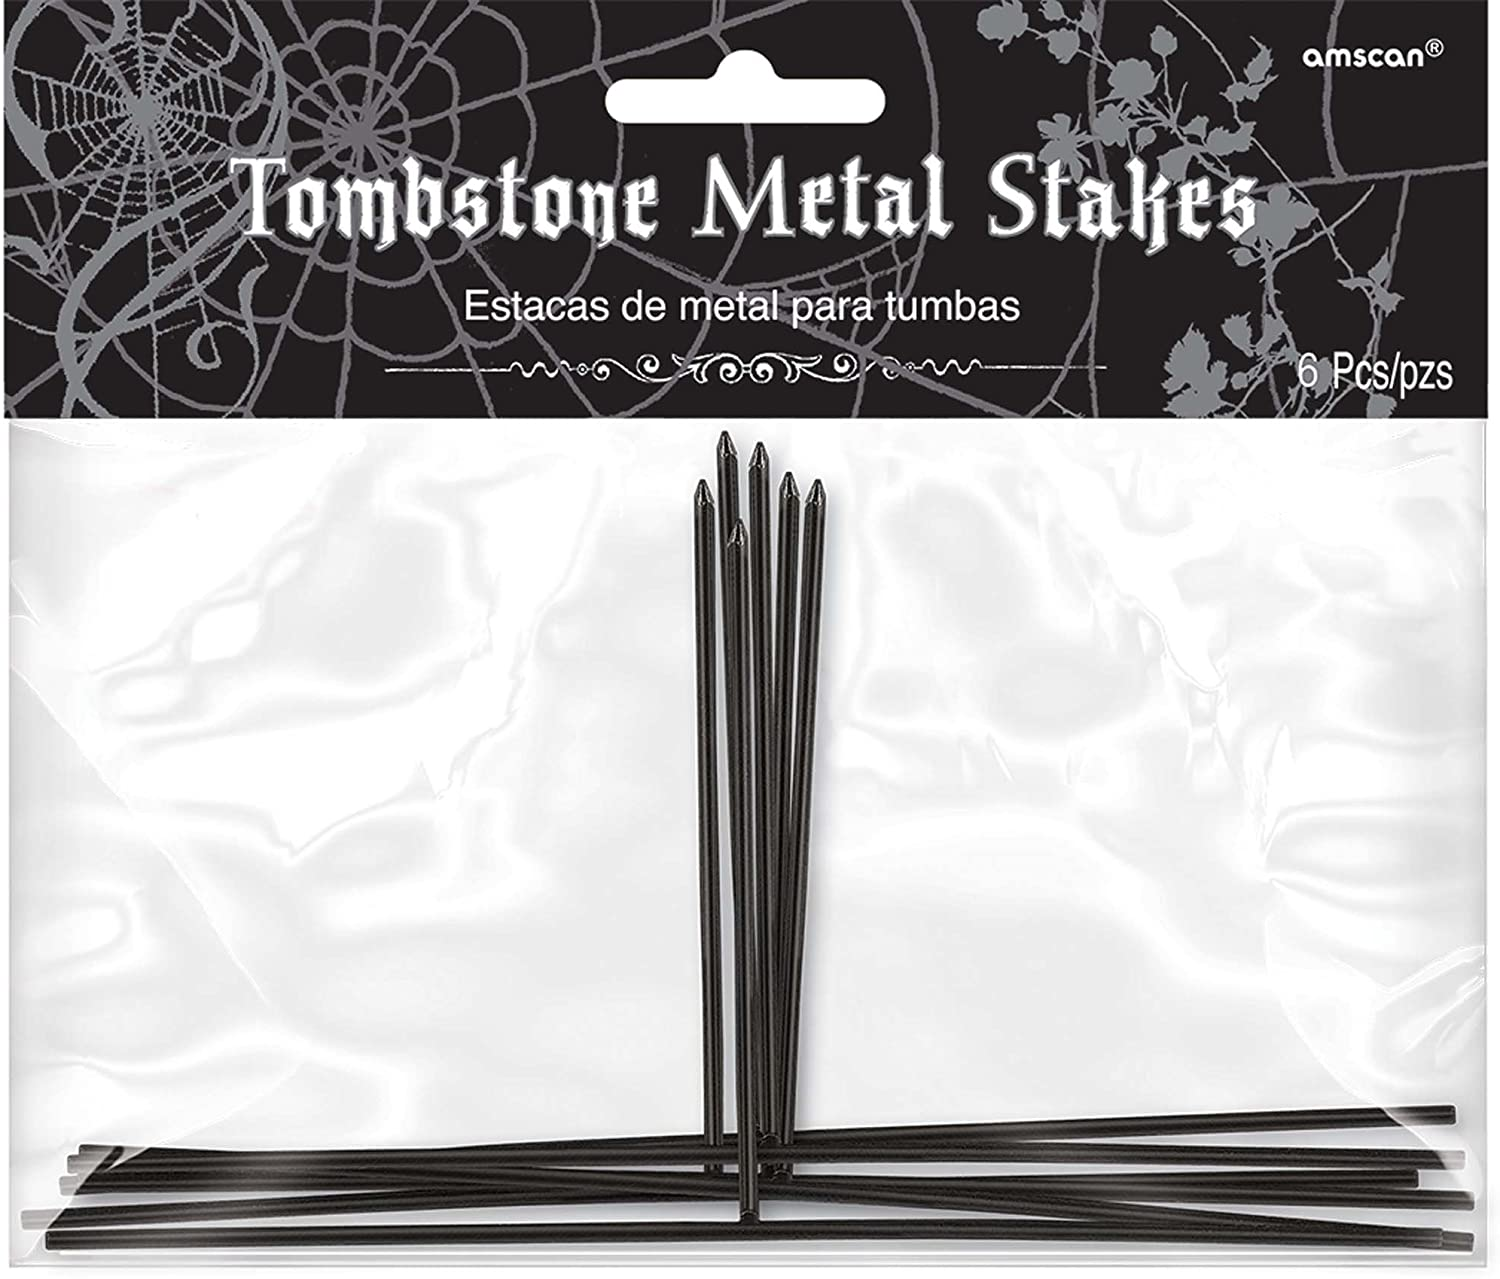 Amscan Metal Stakes for Styrofoam Halloween Tombstone Decorations, Package of 6: Garden & Outdoor